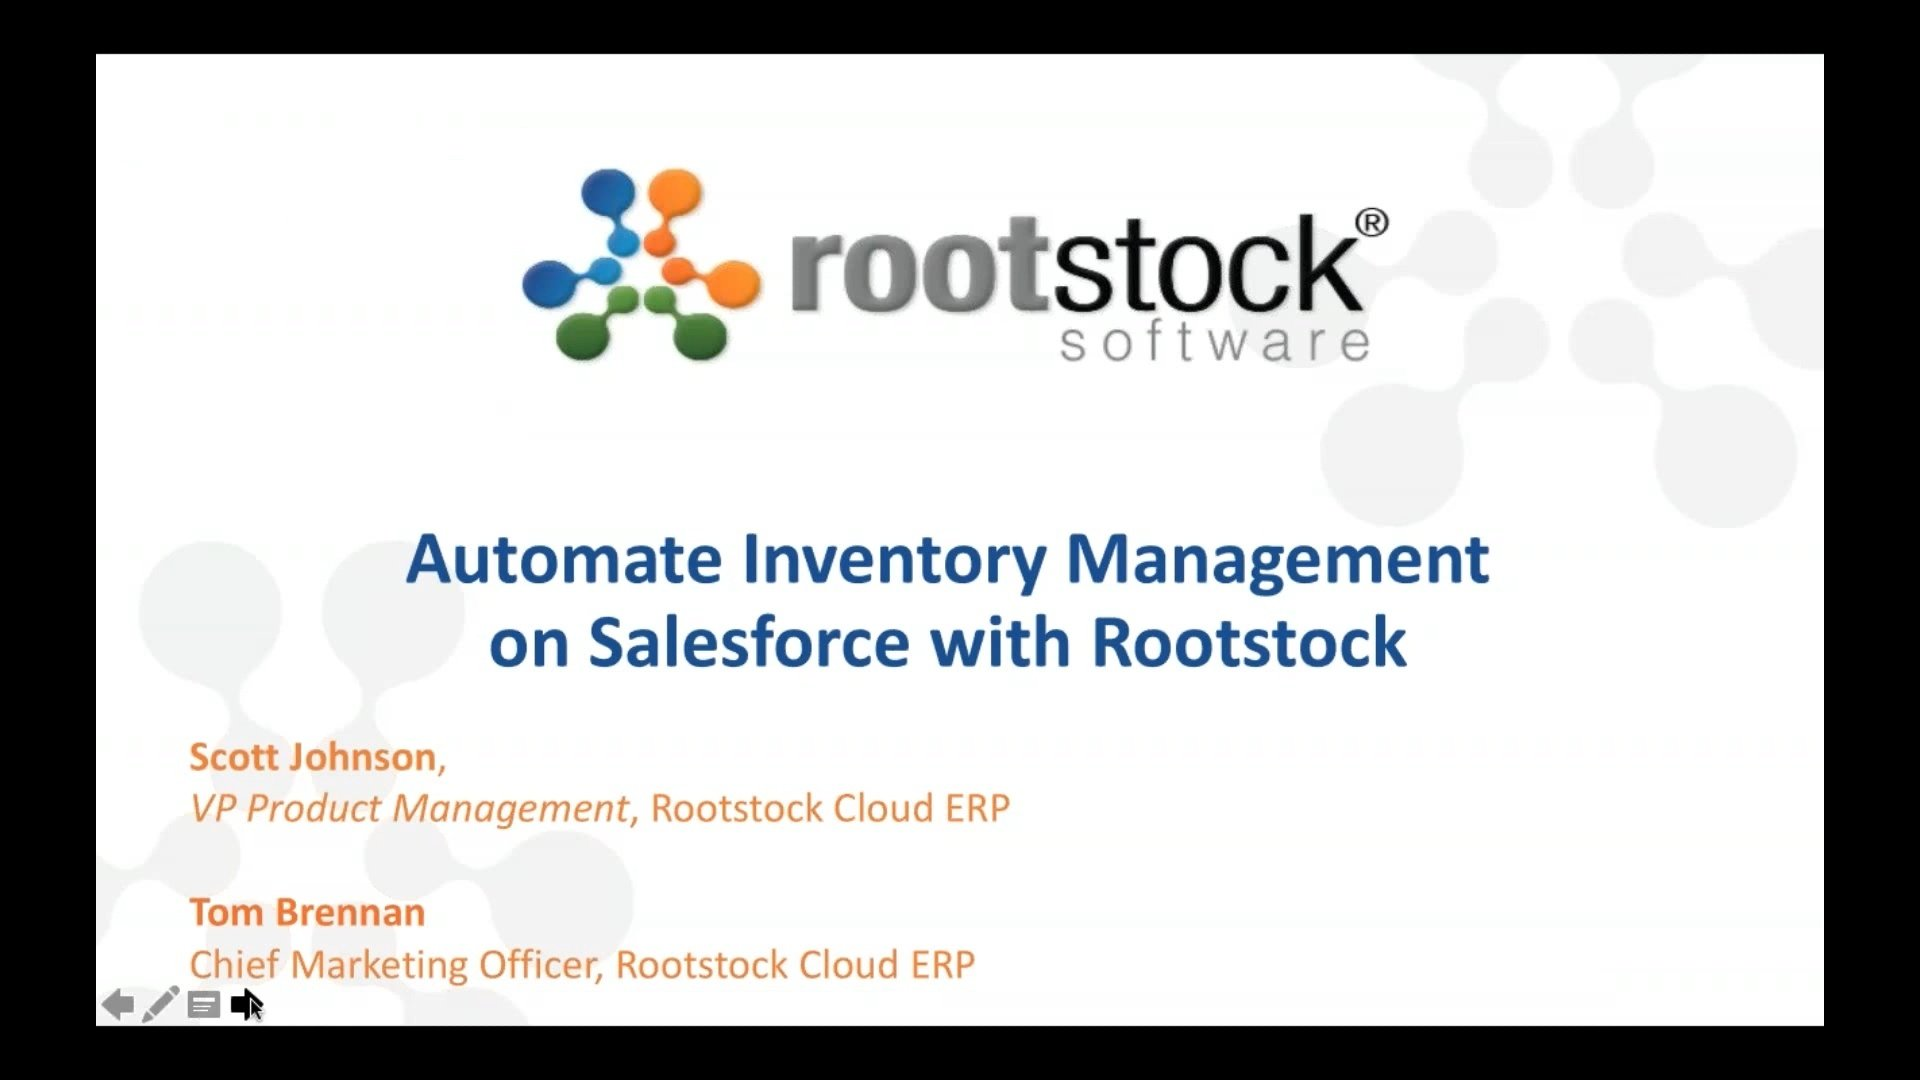 Automate Inventory Management on Salesforce with Rootstock